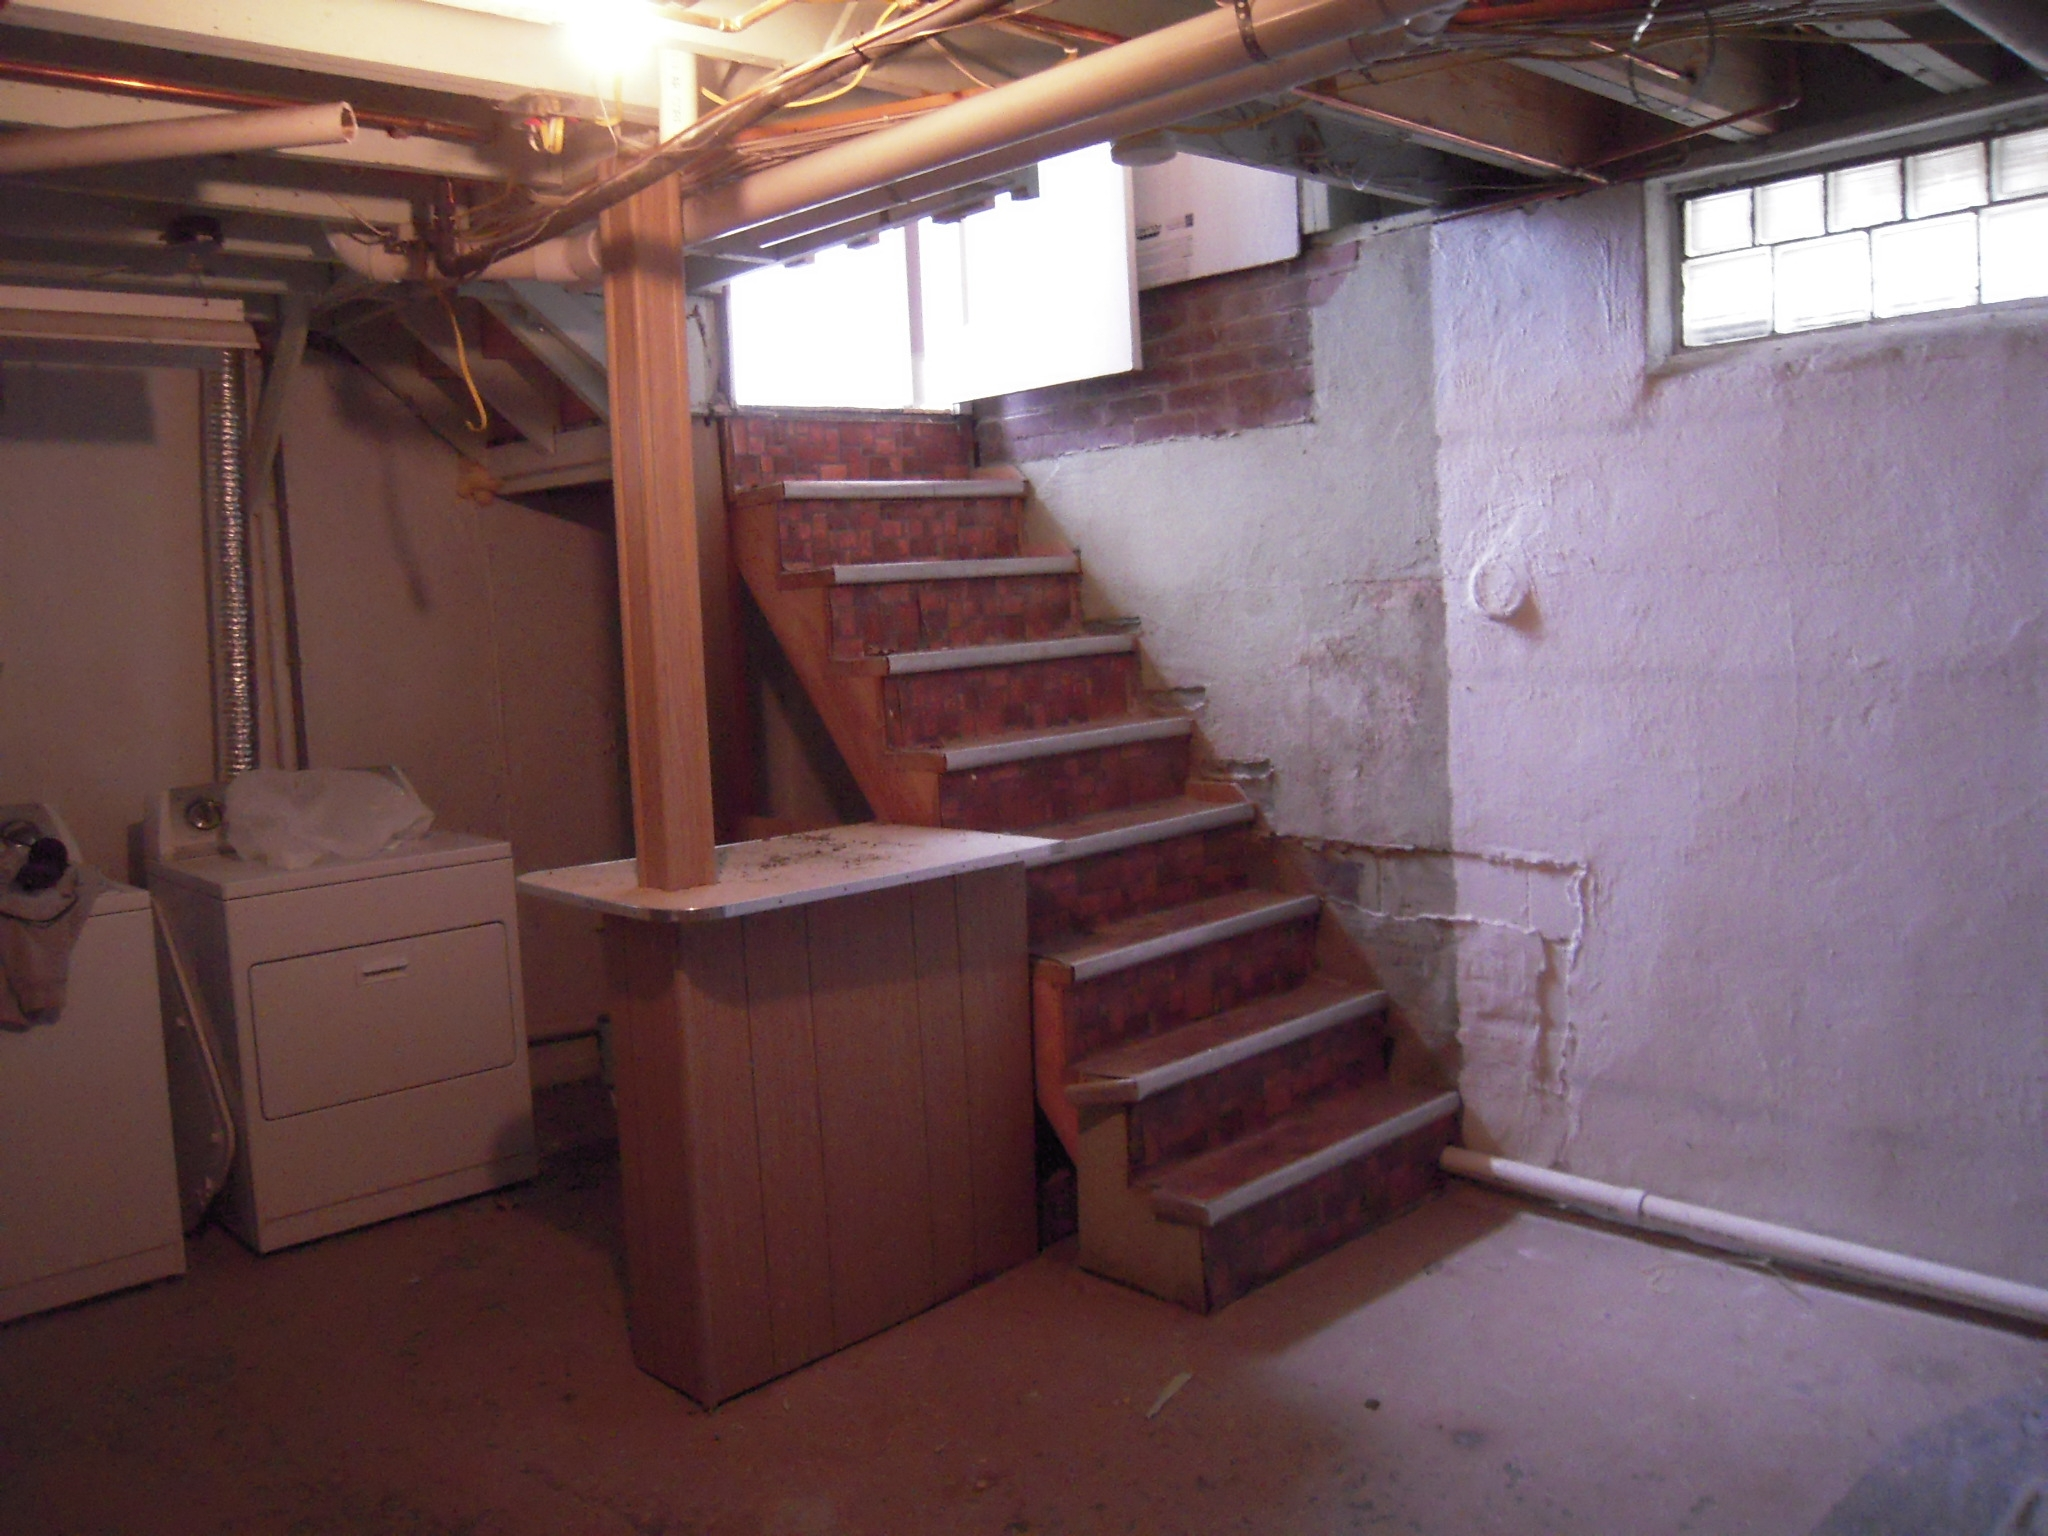 Basement Stairs Adventures In Remodeling | Cost To Build Stairs To Basement | Spiral Staircase | Deck | Risers | Doors | Stair Treads